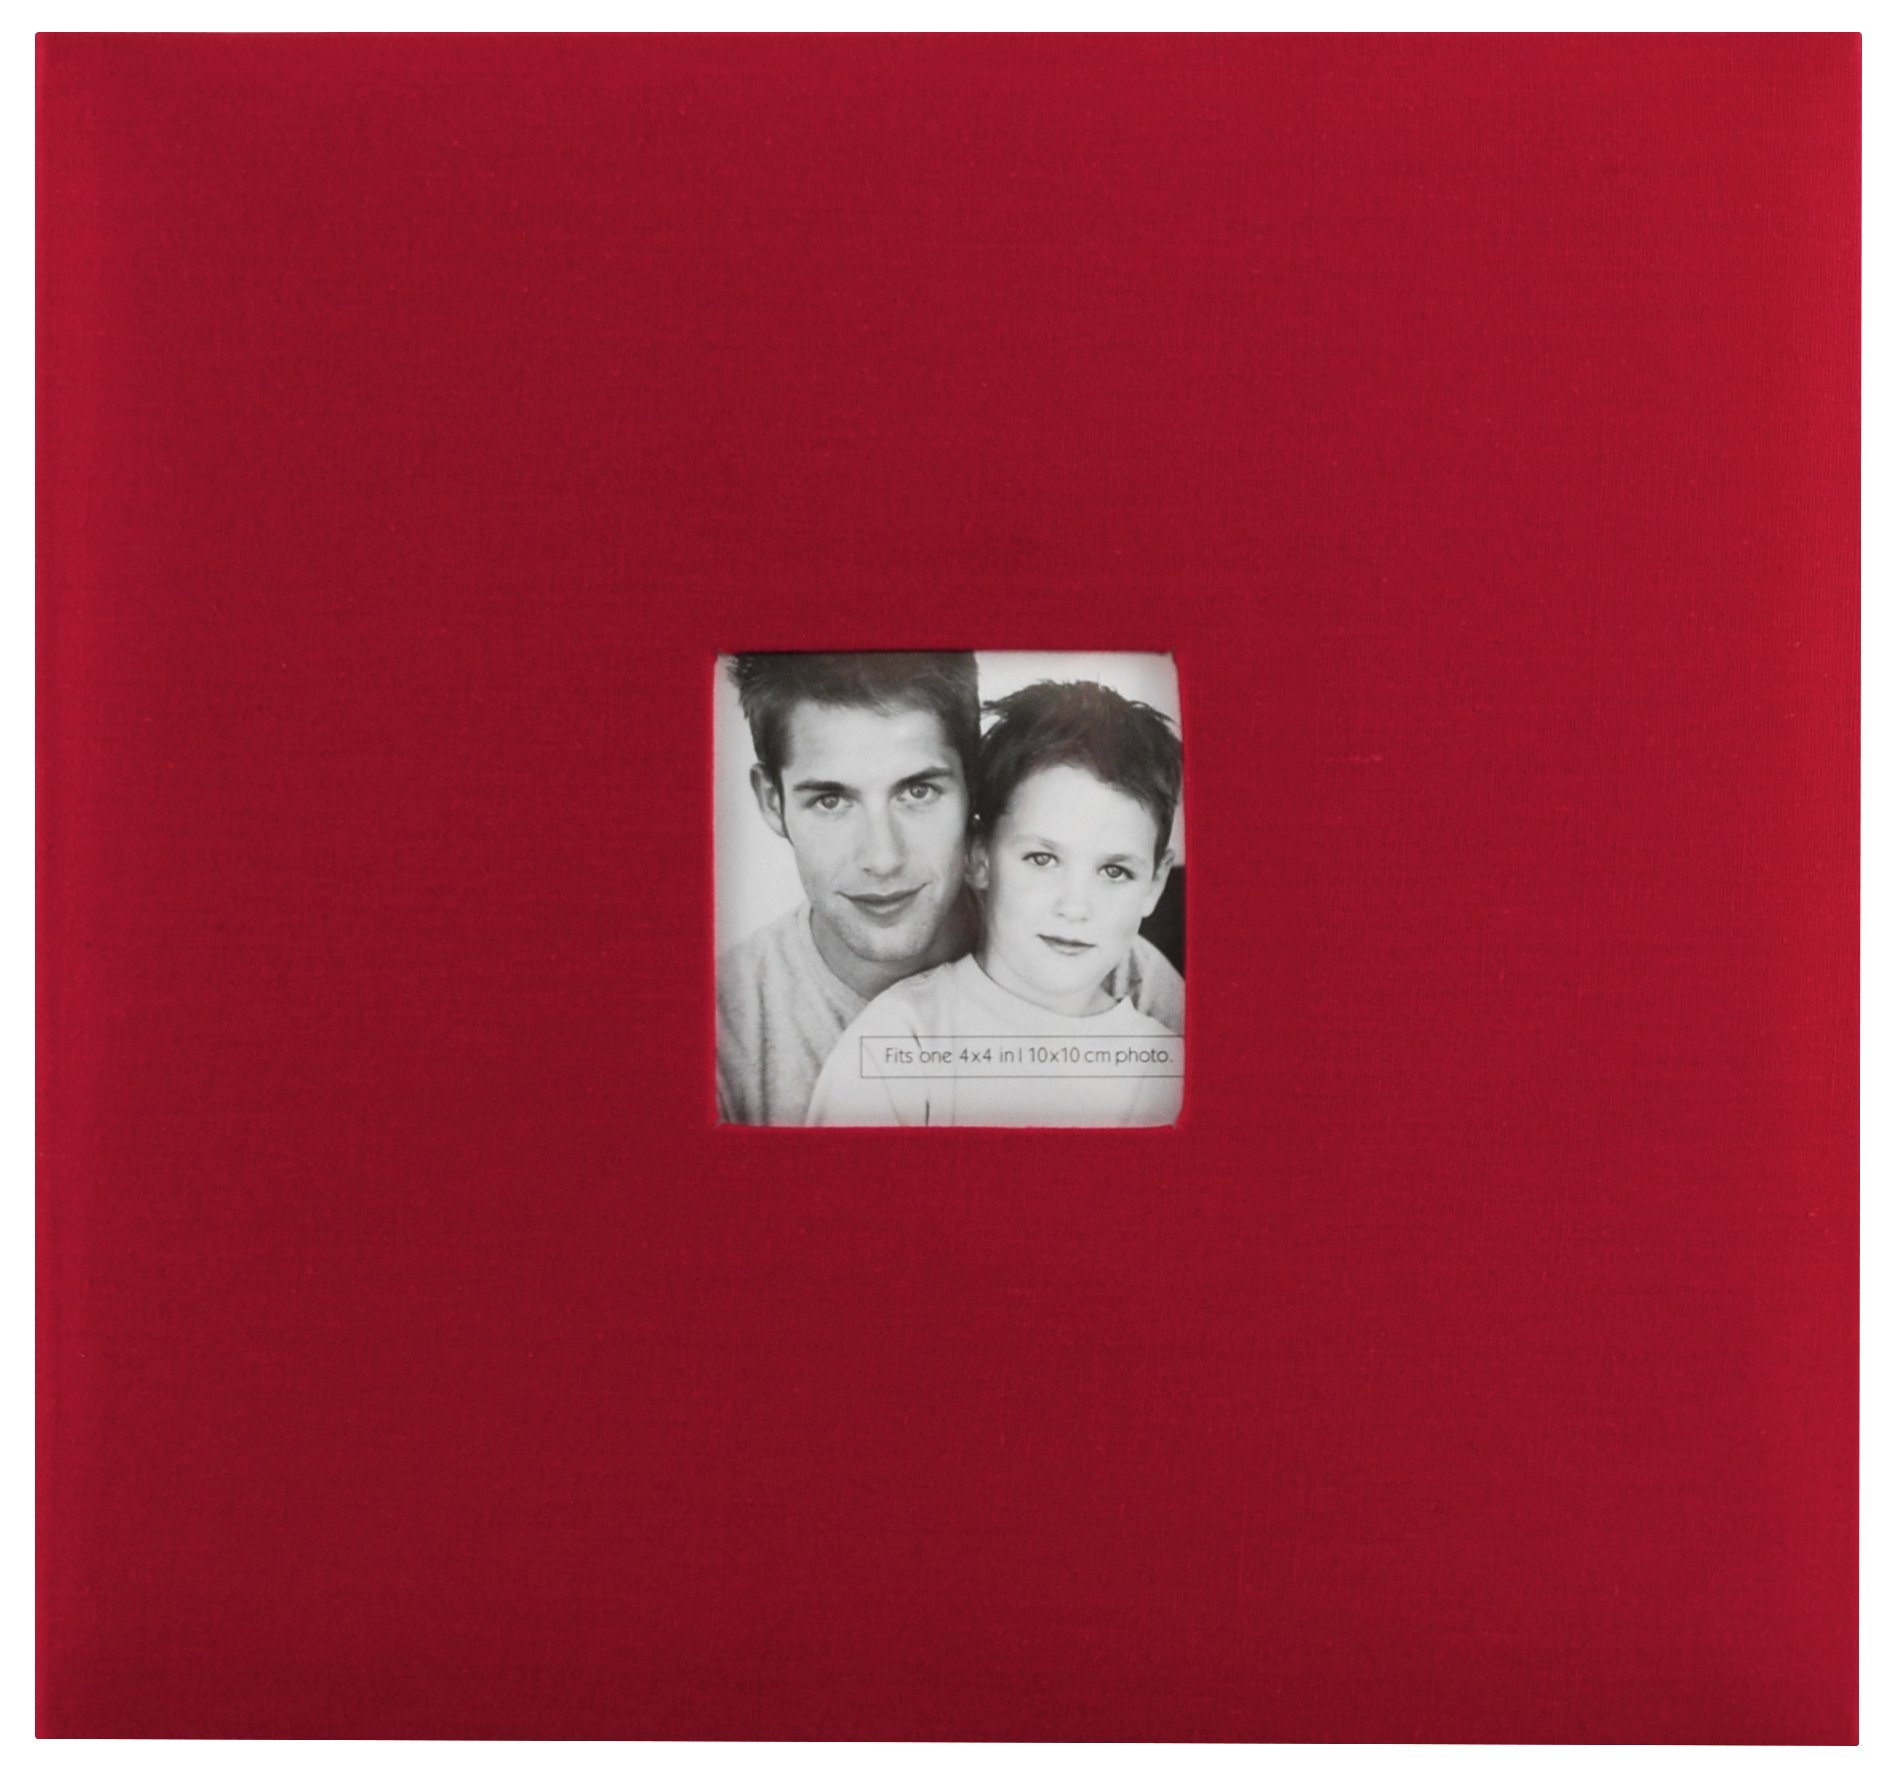 MCS MBI 13.5x12.5 Inch Fashion Fabric Scrapbook Album with 12x12 Inch Pages with Photo Opening, Red (802513)